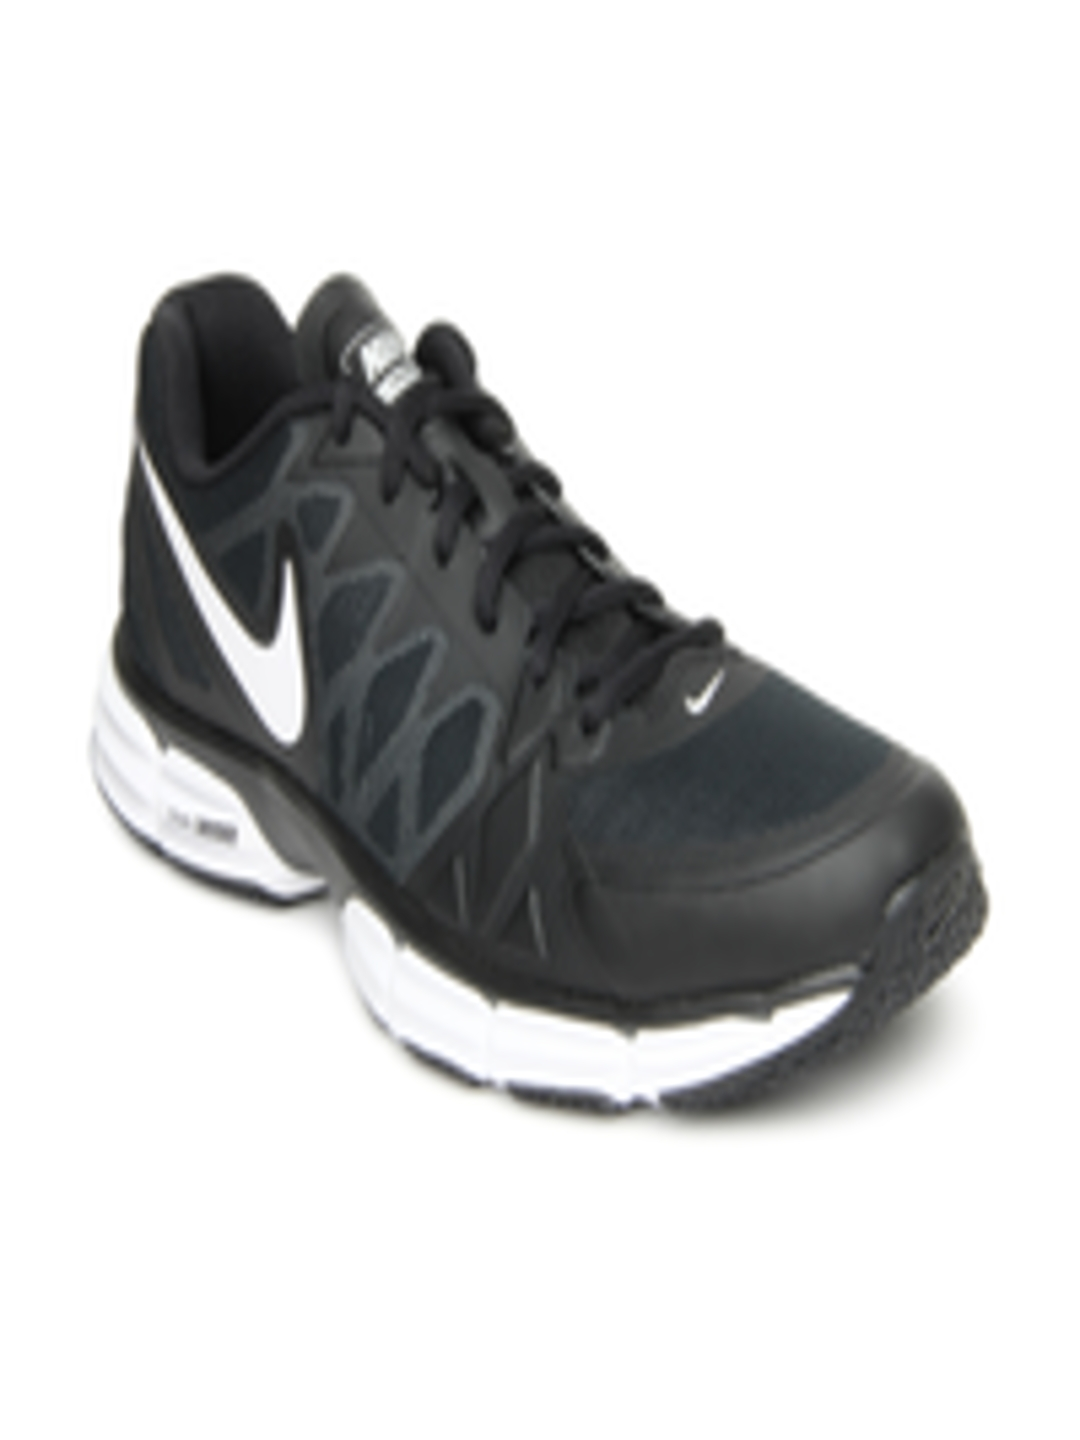 on sale 0edc7 1ffbd Nike-Men-Black -Dual-Fusion-TR-6-Training-Shoes 1 0e75987b35f9affc81e328f74791a008.jpg